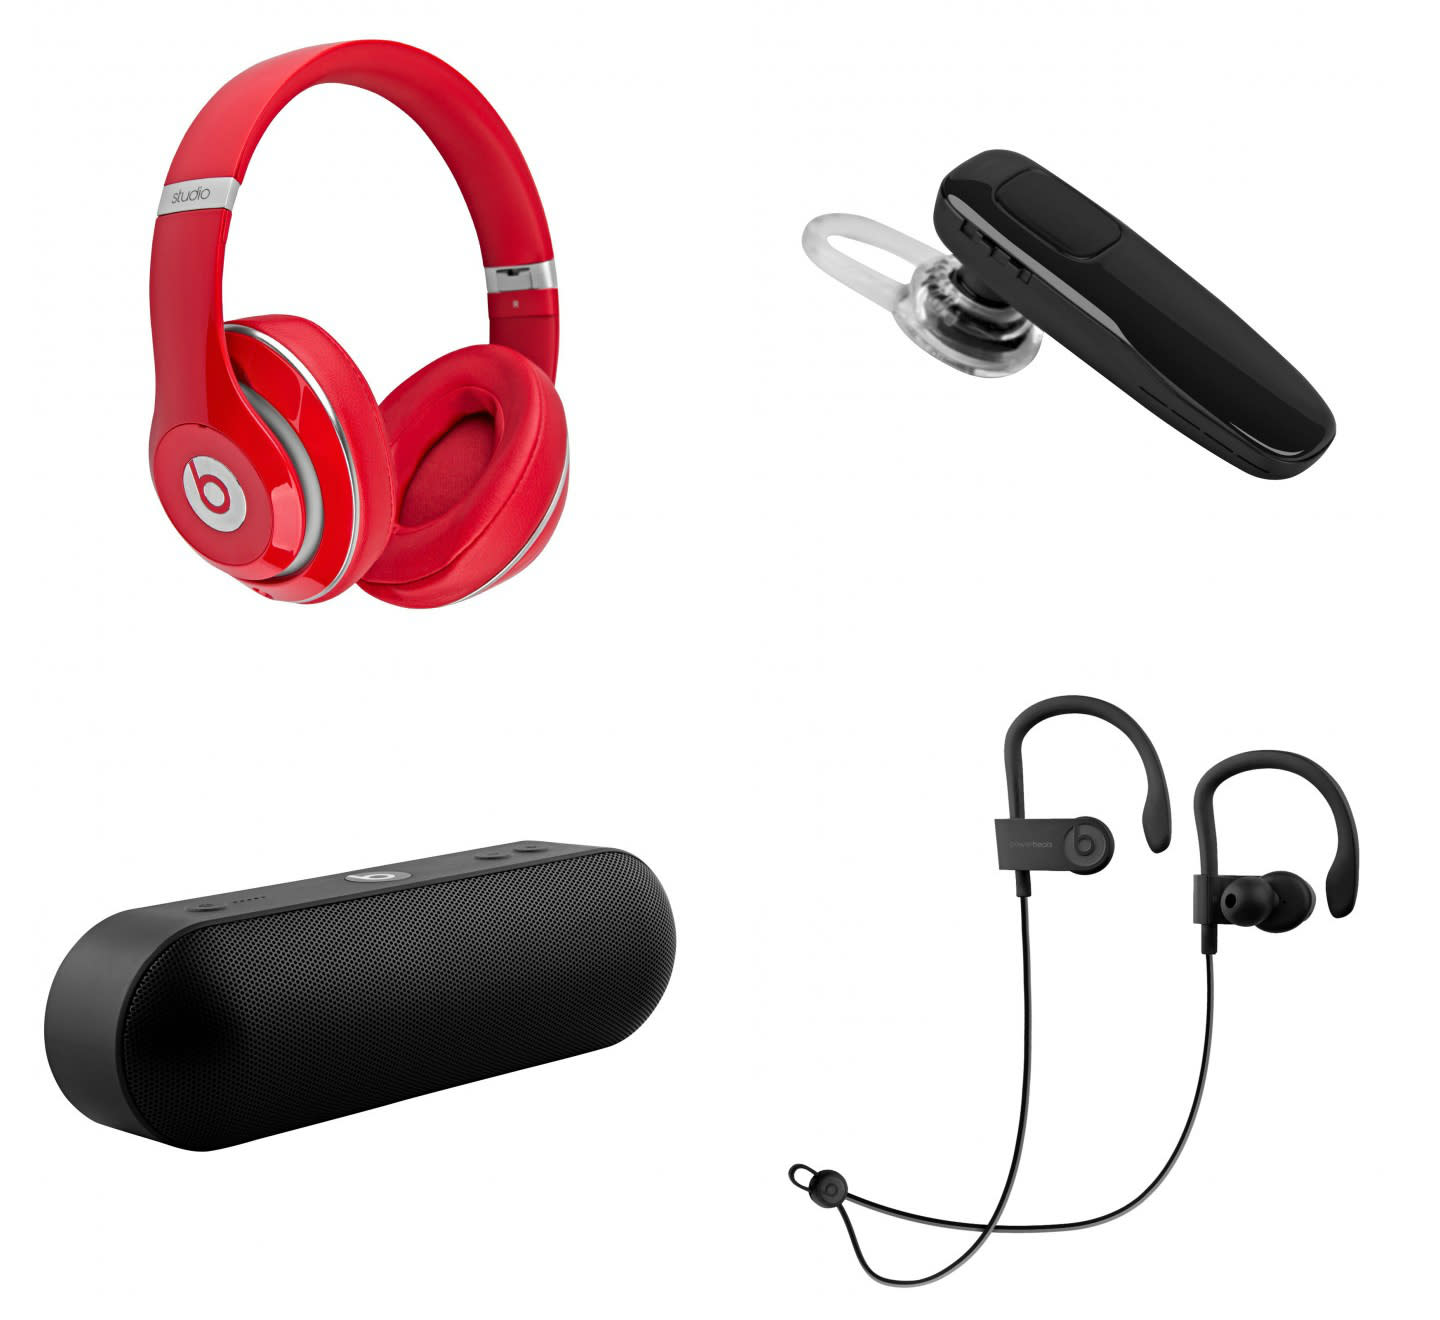 marketing headphones and bargaining power Product market regulation and endogenous union formation product market regulation and endogenous also to prefer individual bargaining when monopoly power.